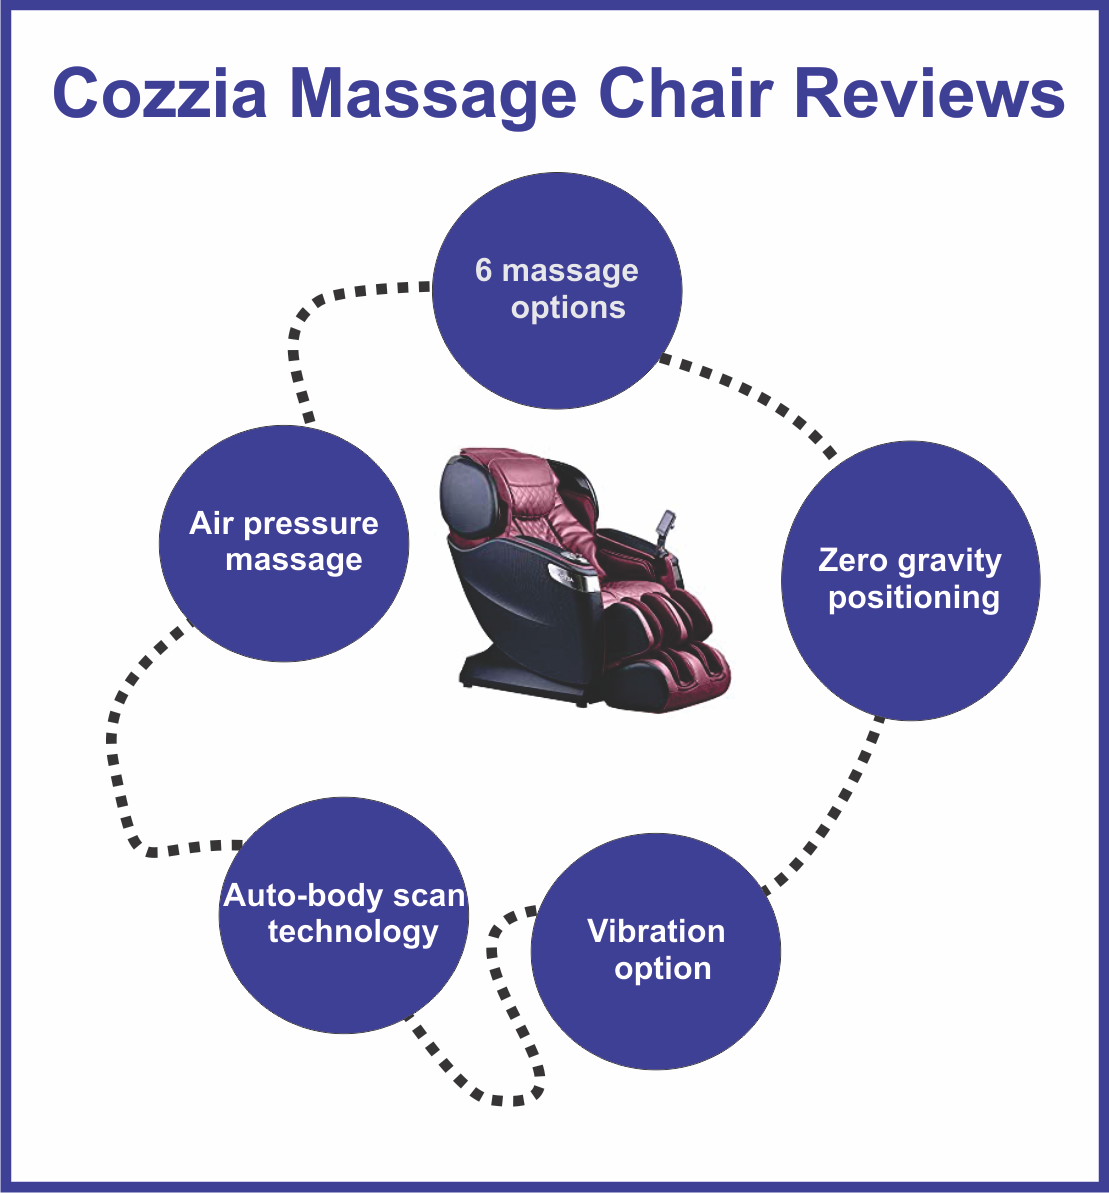 Cozzia Massage Chair Reviews In 2020 Massage Body Scanning Massage Chair